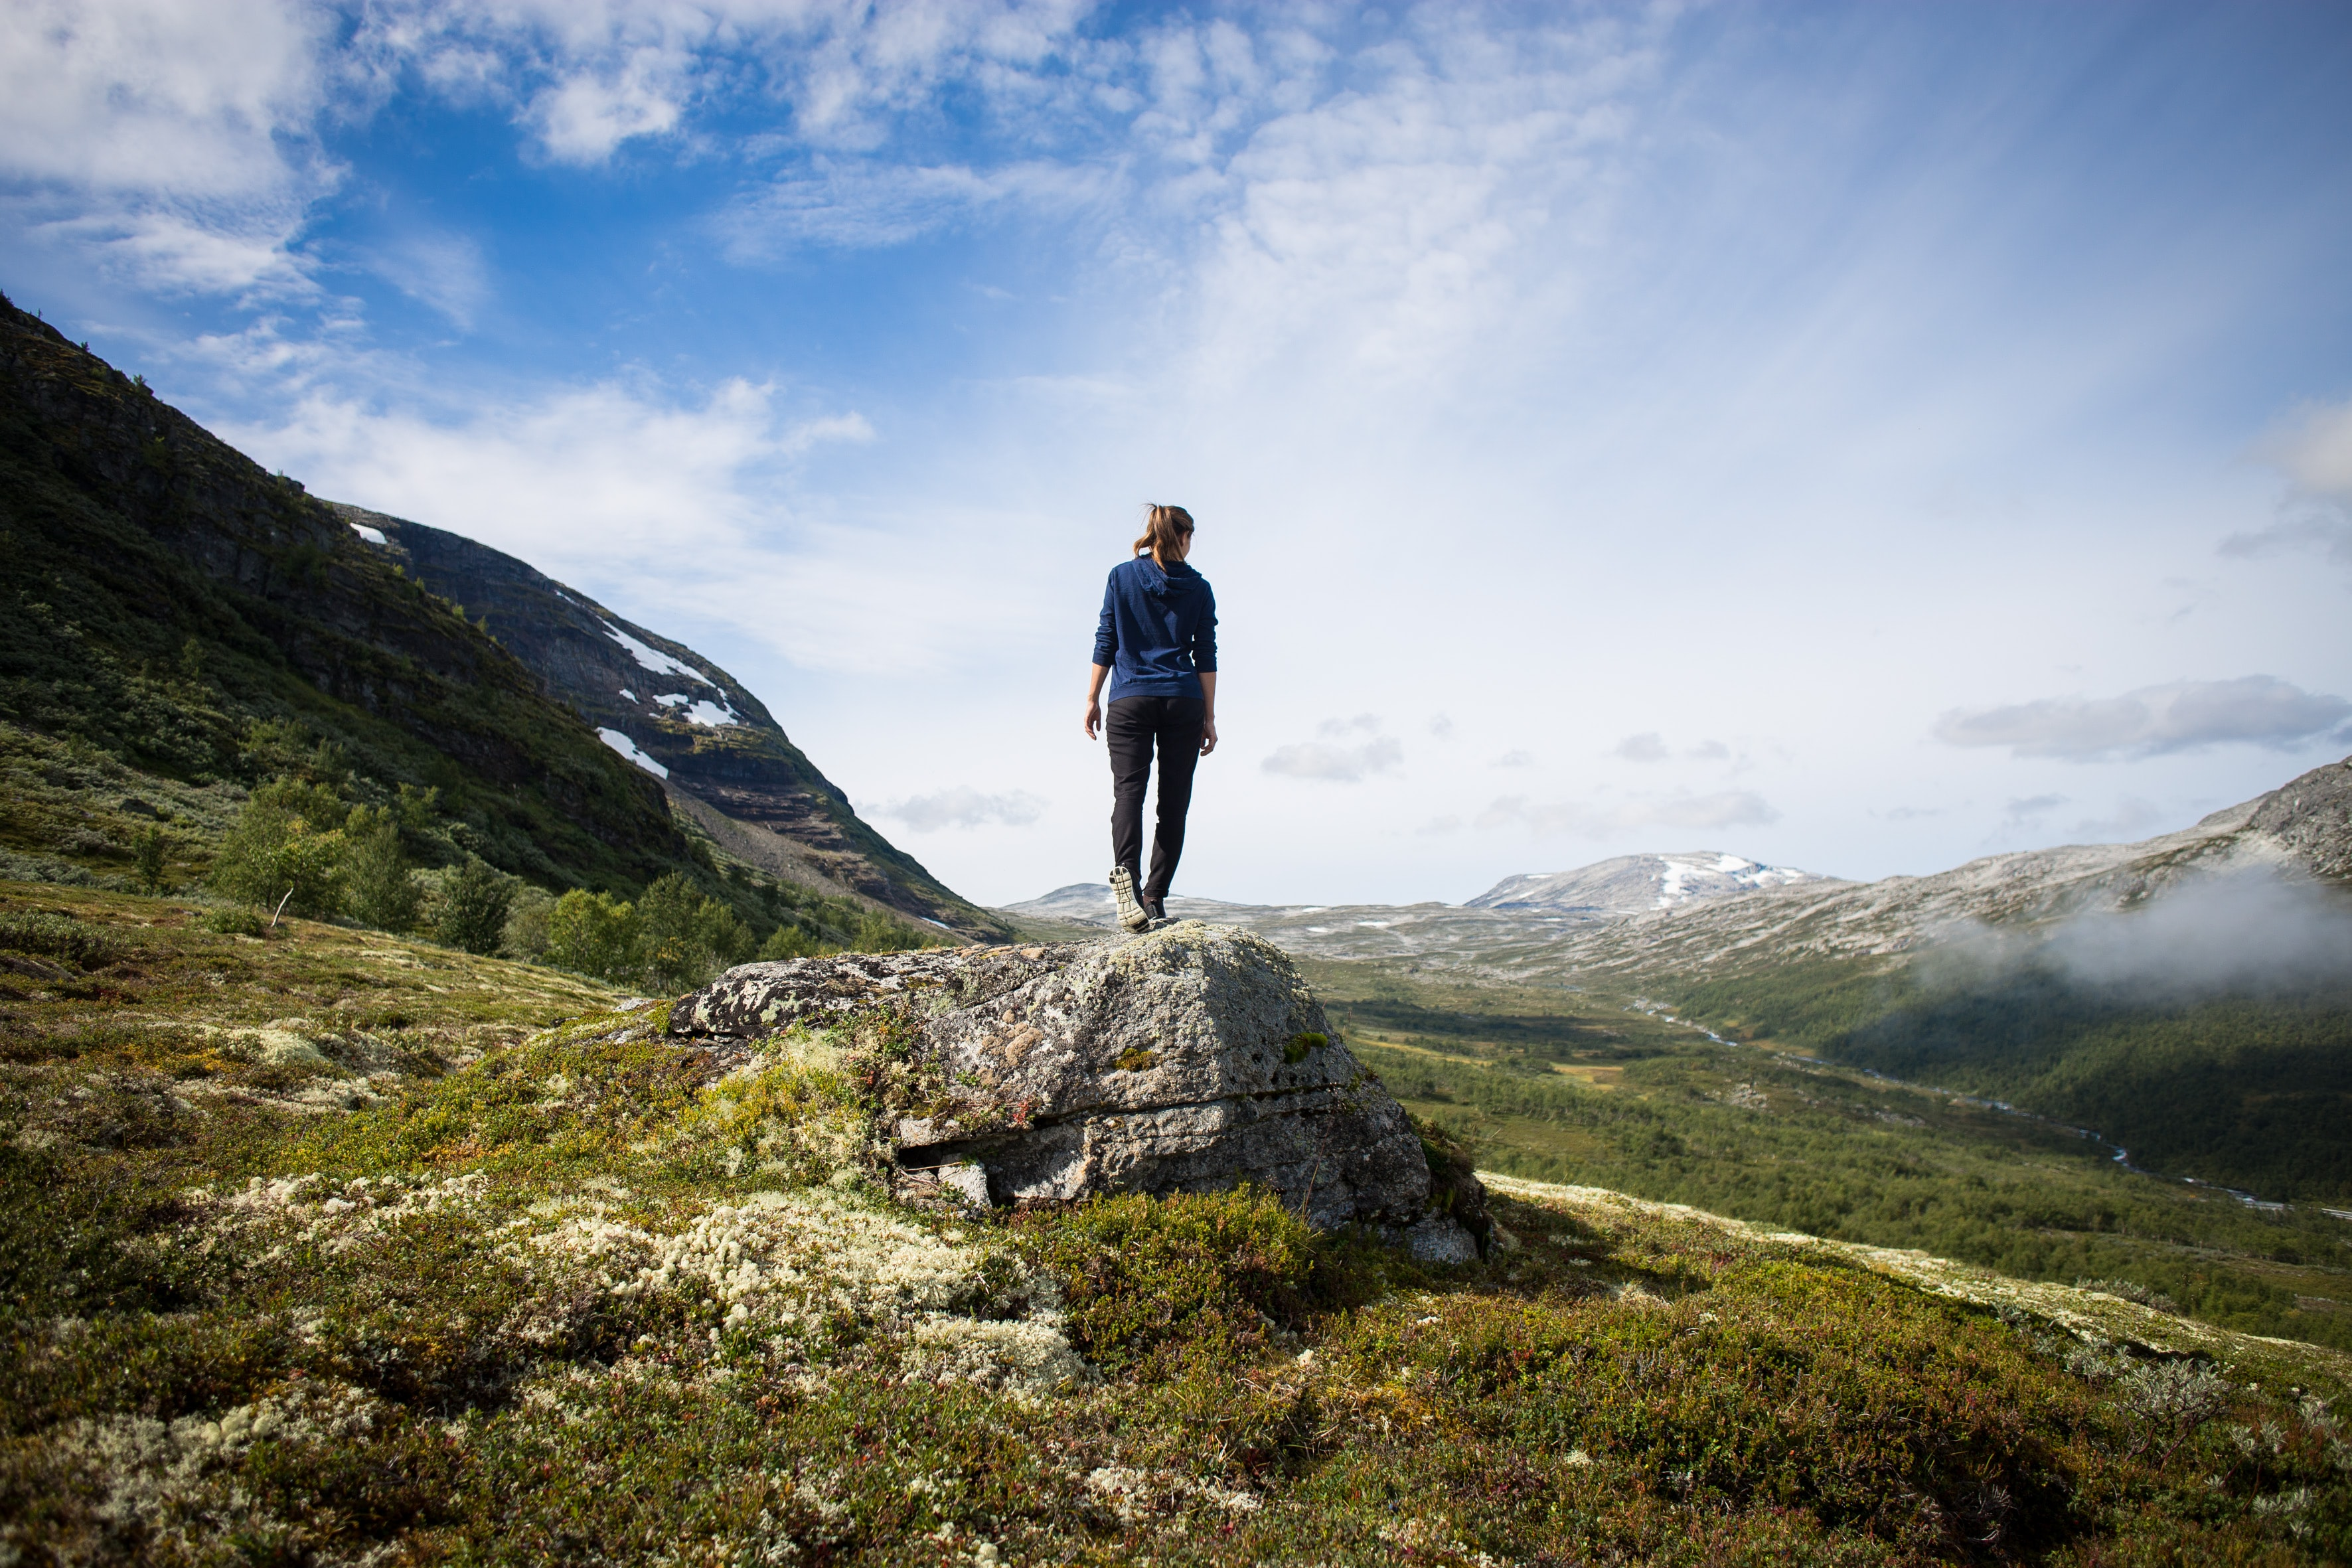 person standing on rock looking at mountain